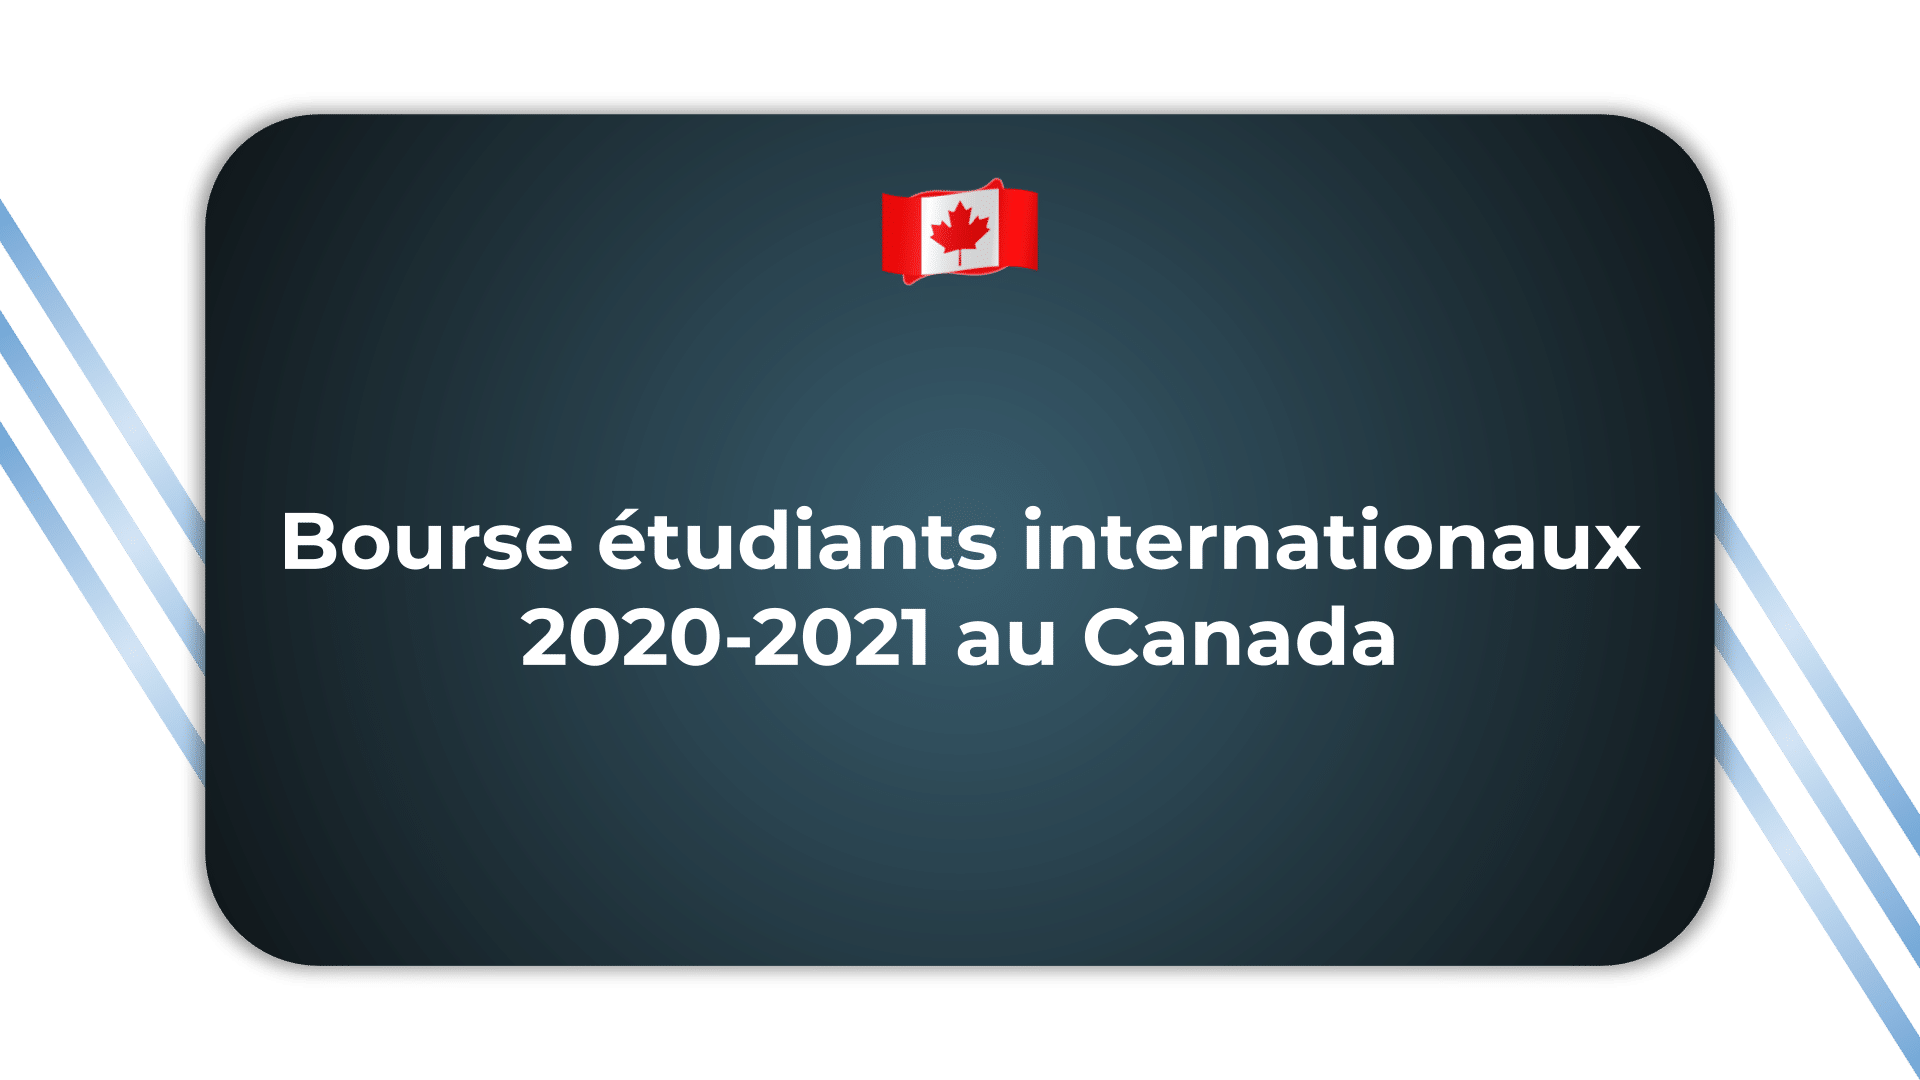 Bourse étudiants internationaux